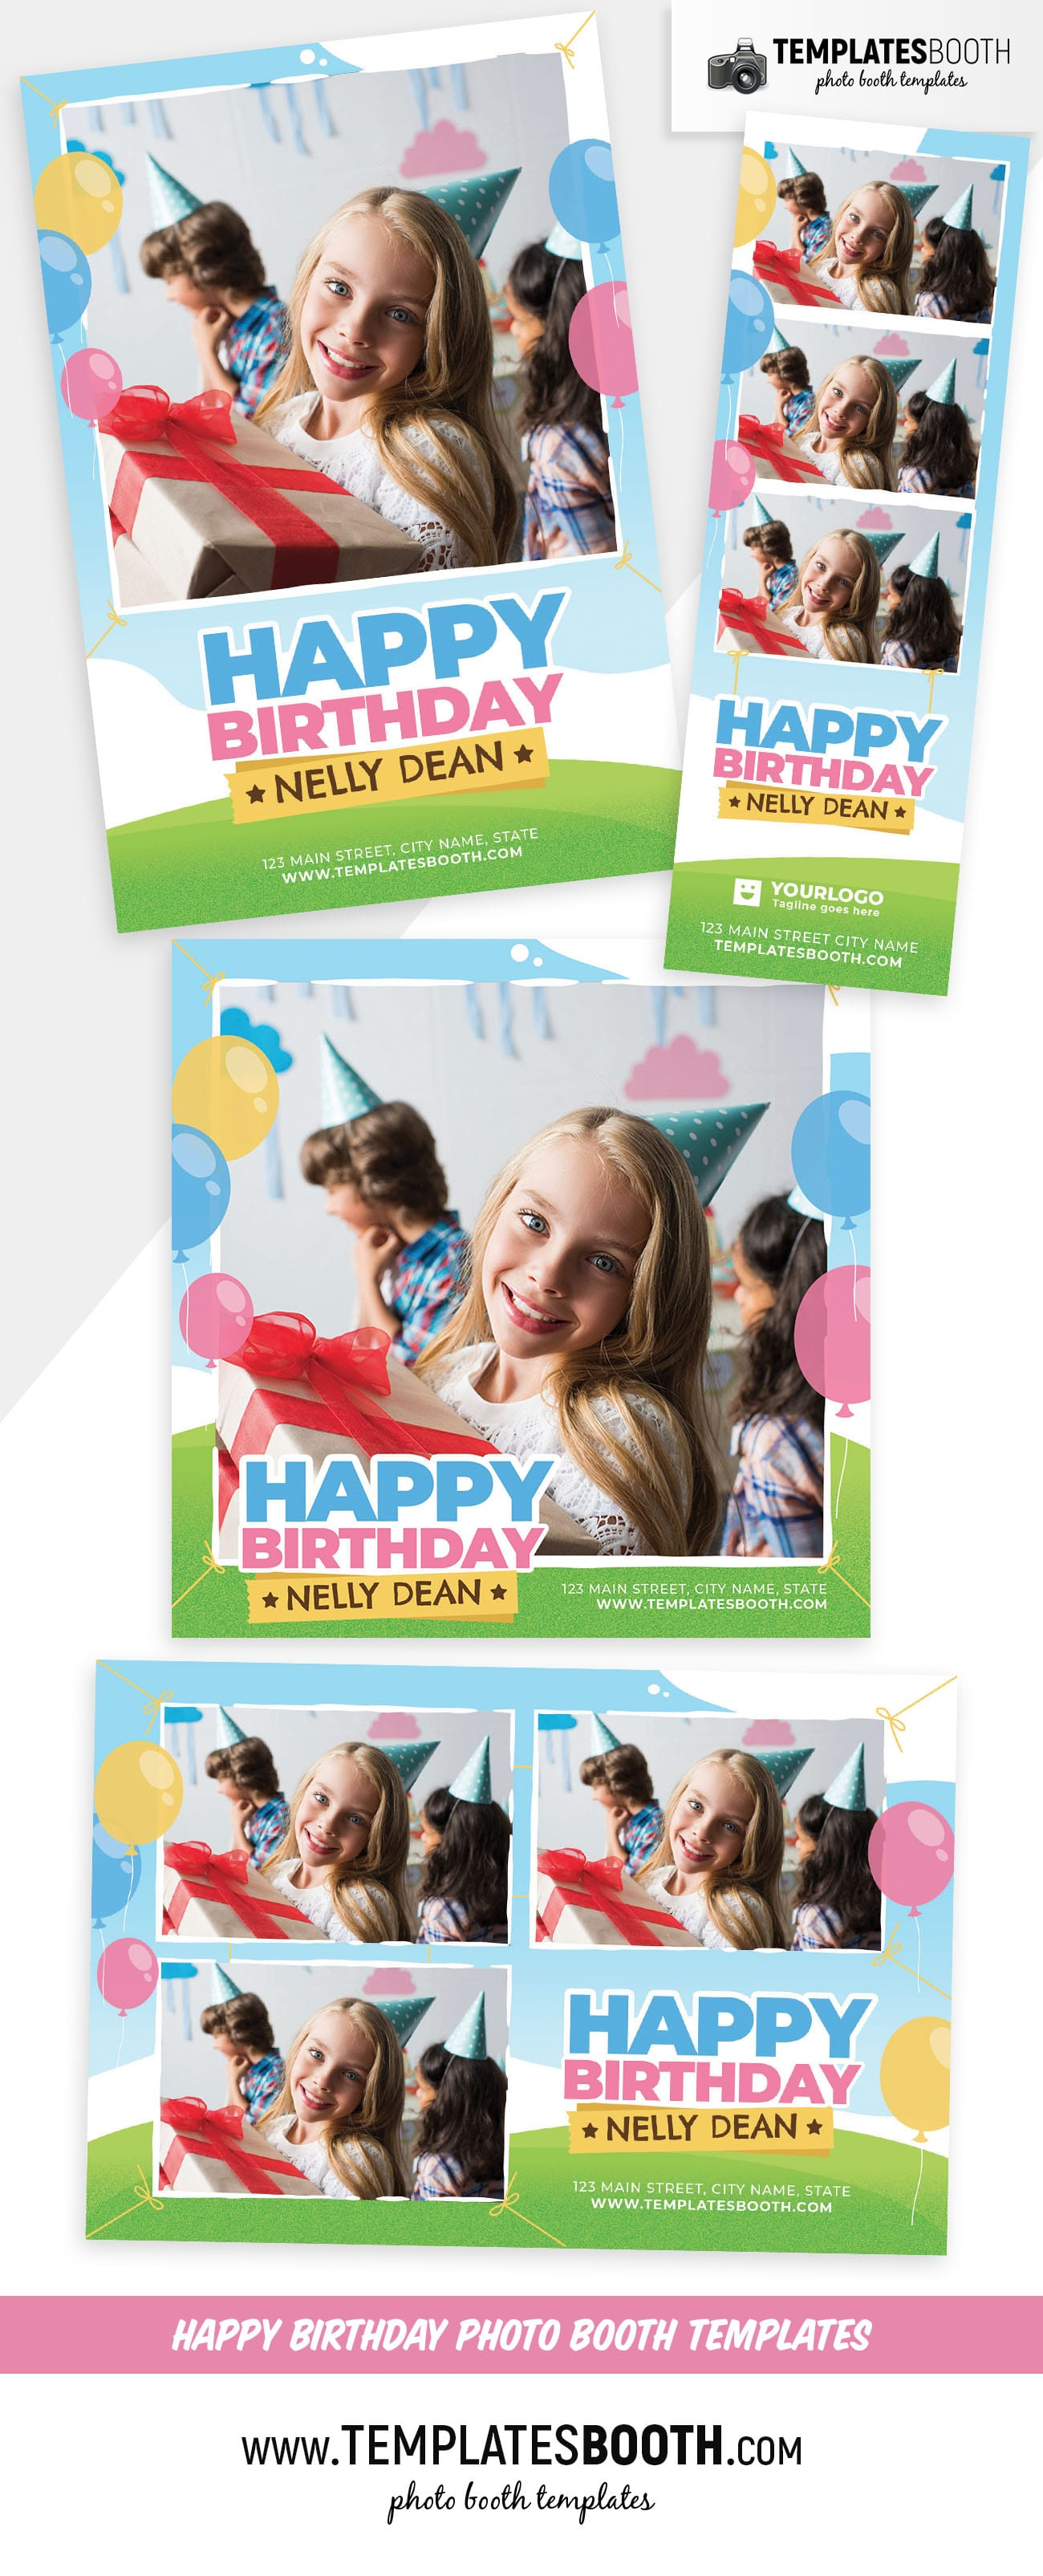 Happy Birthday Photo Booth Template (Full Preview)